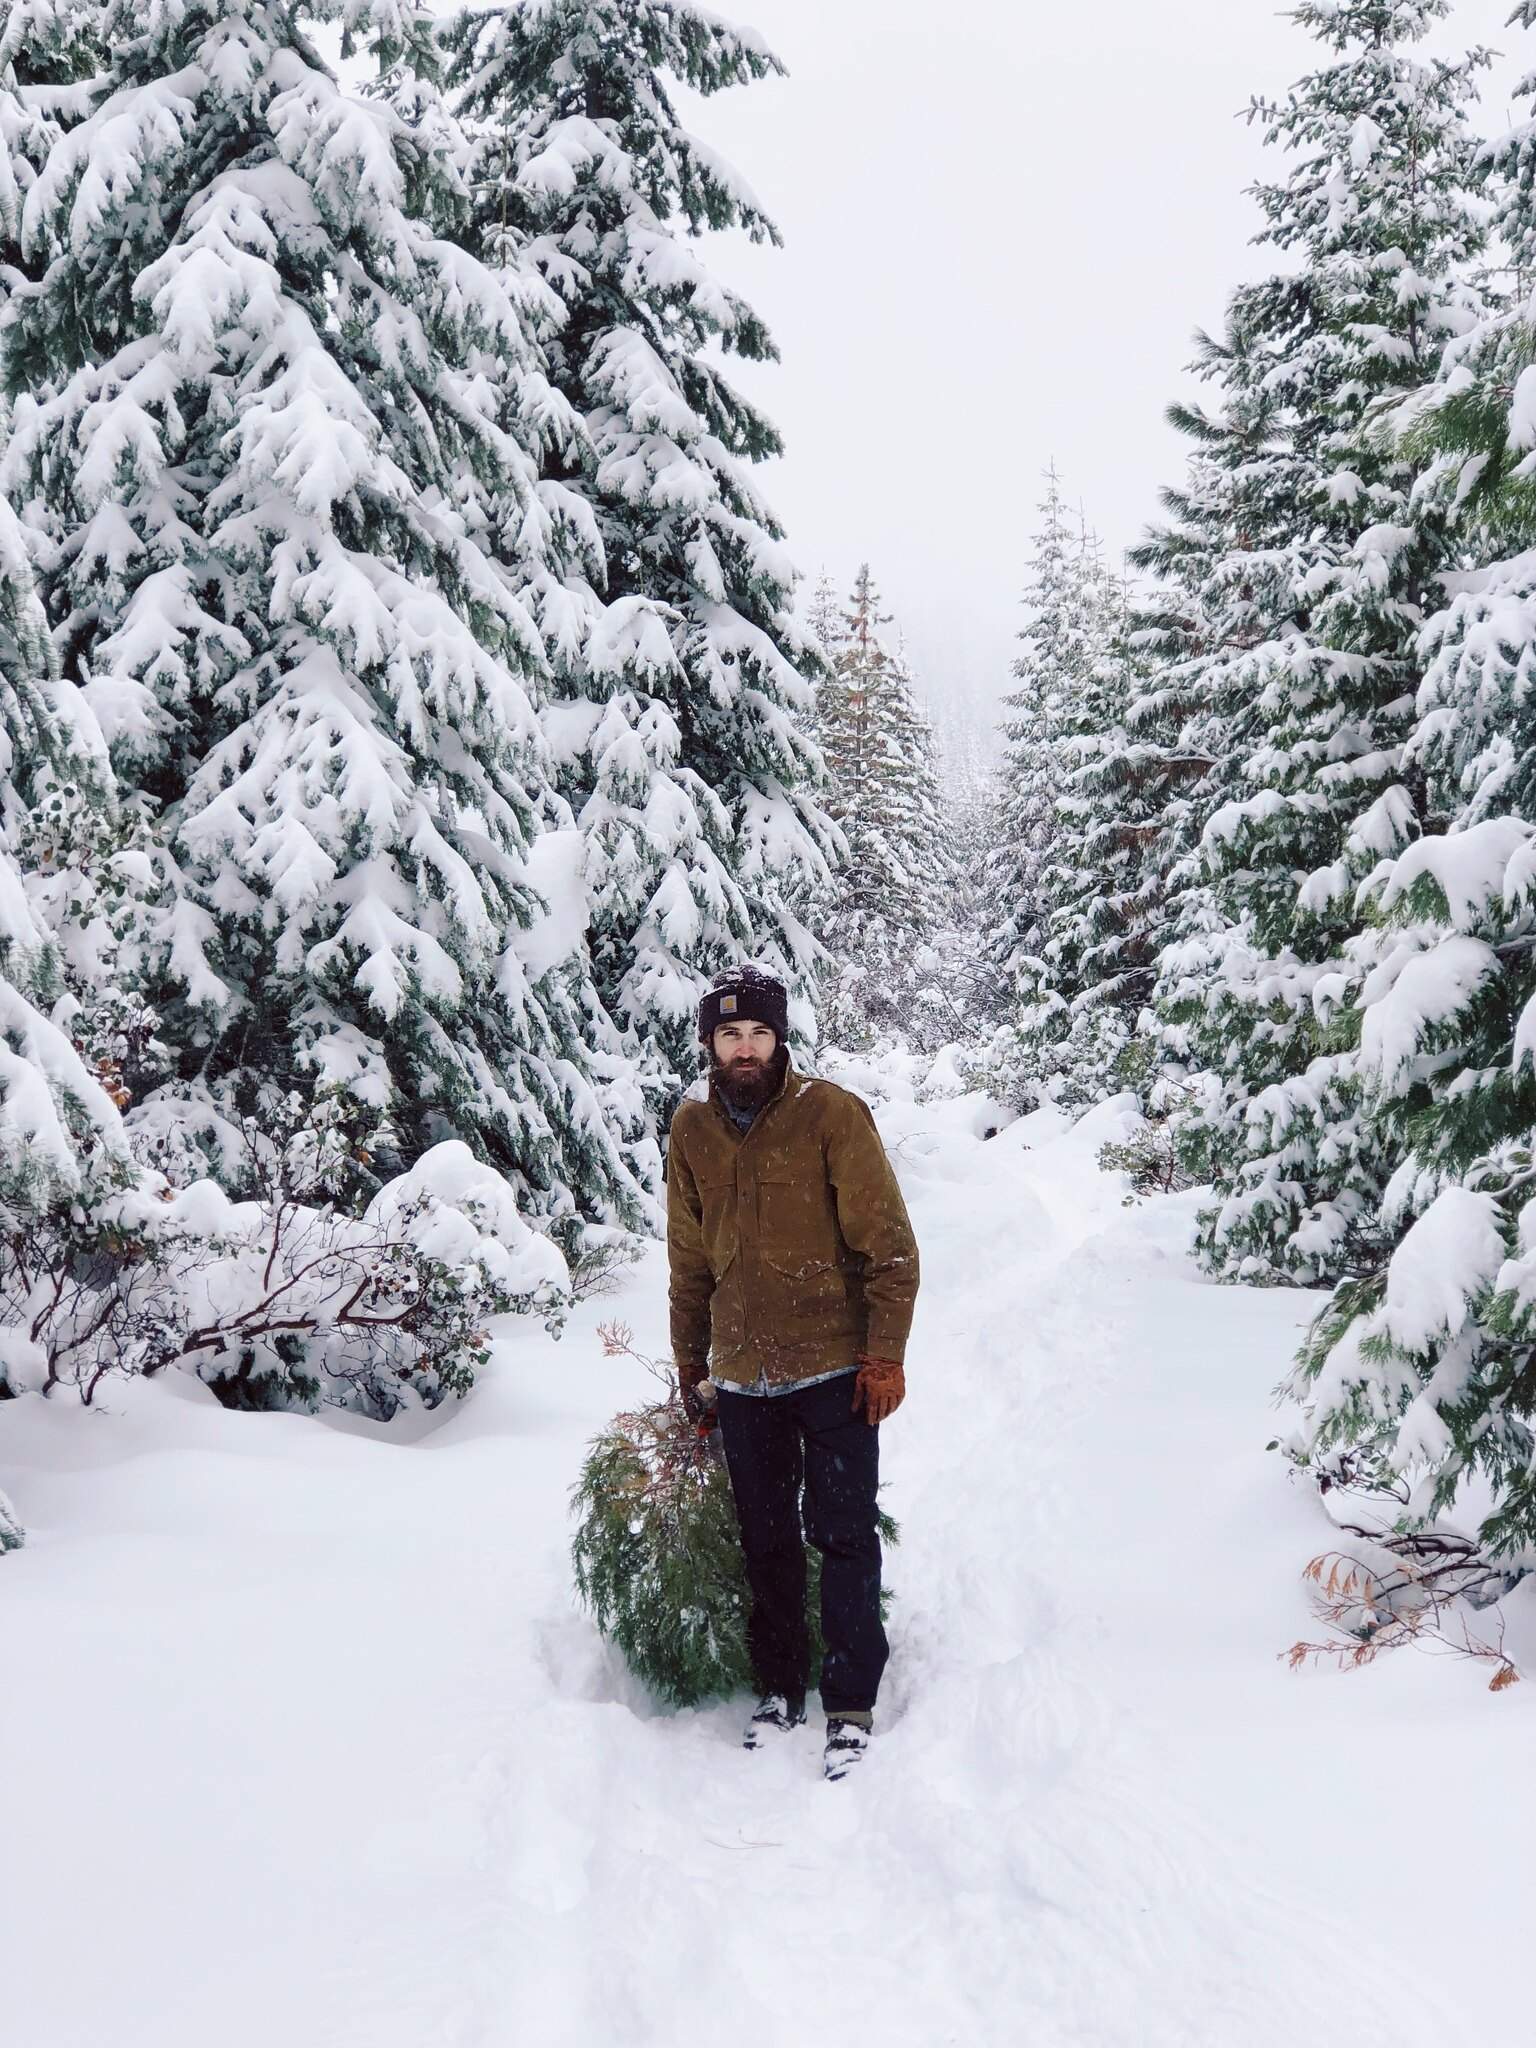 A man dragging an evergreen tree in a very snowy forest